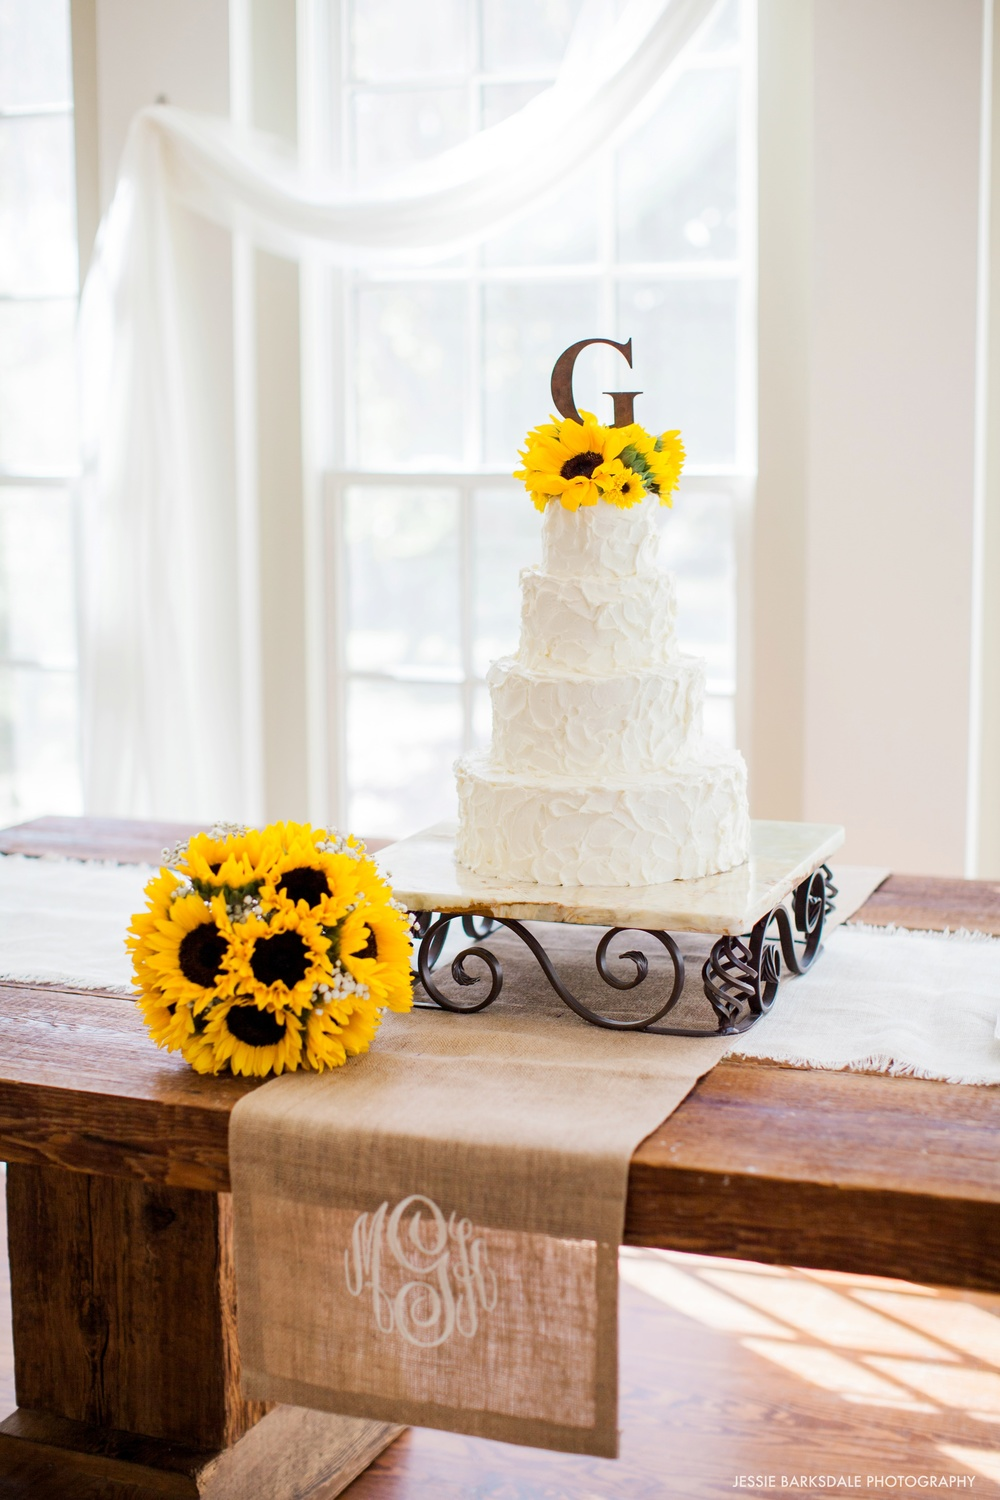 Jessie Barksdale Photography_Elms Coosada_Plantation Home_Barnwood Table_Wedding Cake_Fall Wedding Inspiration_Sunflower Bouquet_Bridal Party_Birmingham Montgomery Alabama Atlanta Wedding Photographer